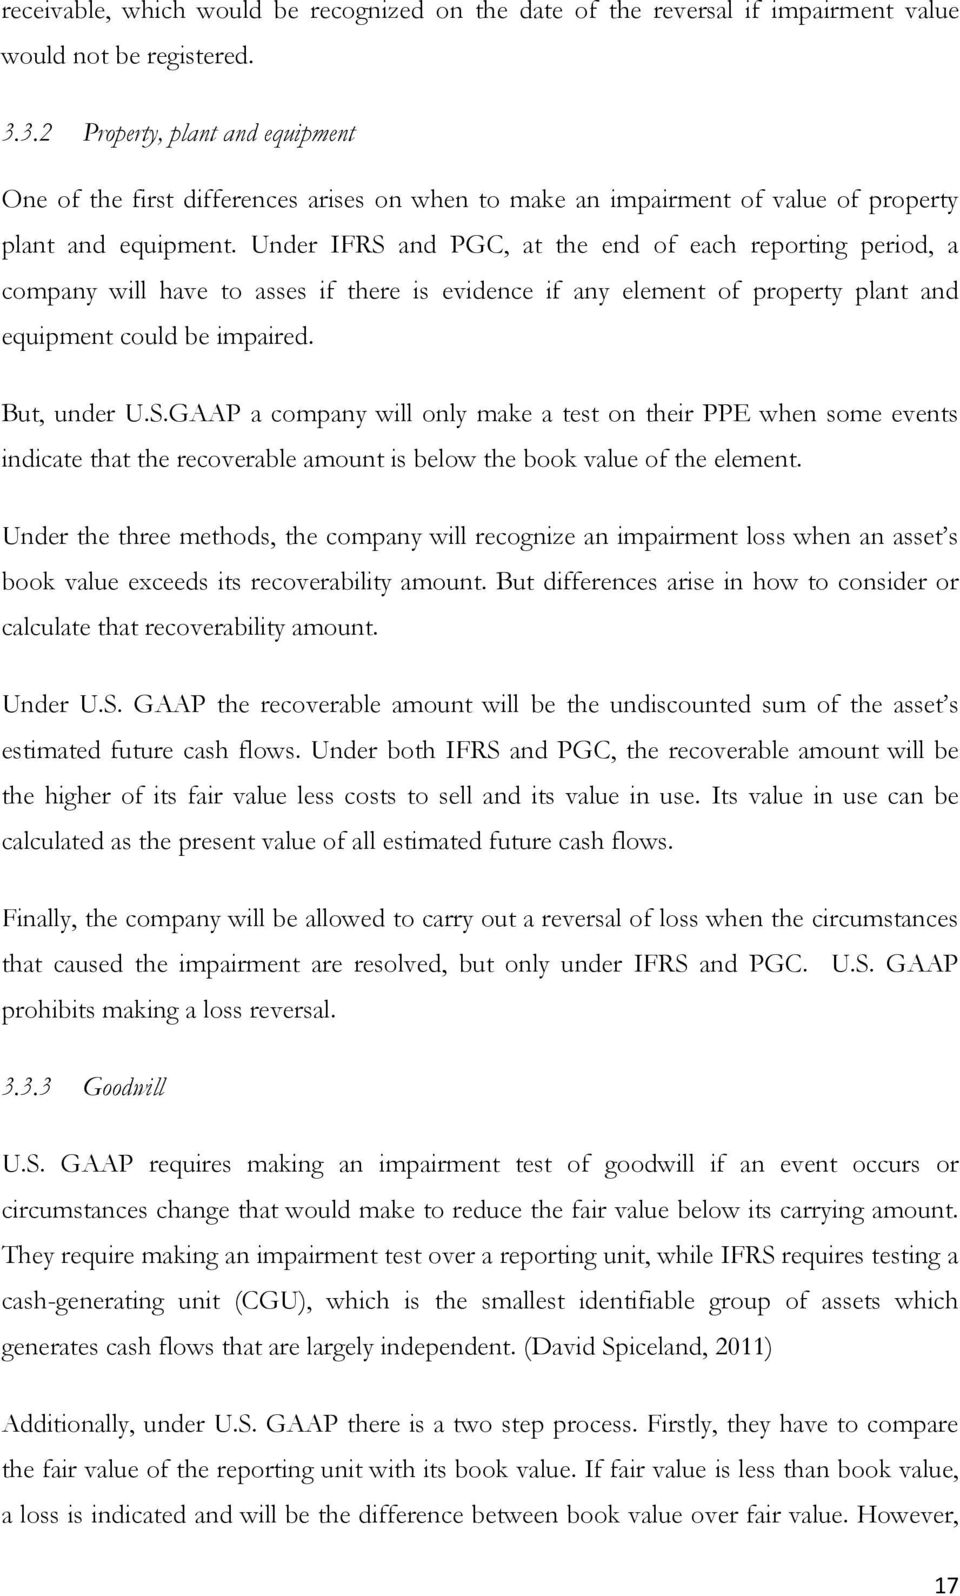 Under IFRS and PGC, at the end of each reporting period, a company will have to asses if there is evidence if any element of property plant and equipment could be impaired. But, under U.S.GAAP a company will only make a test on their PPE when some events indicate that the recoverable amount is below the book value of the element.